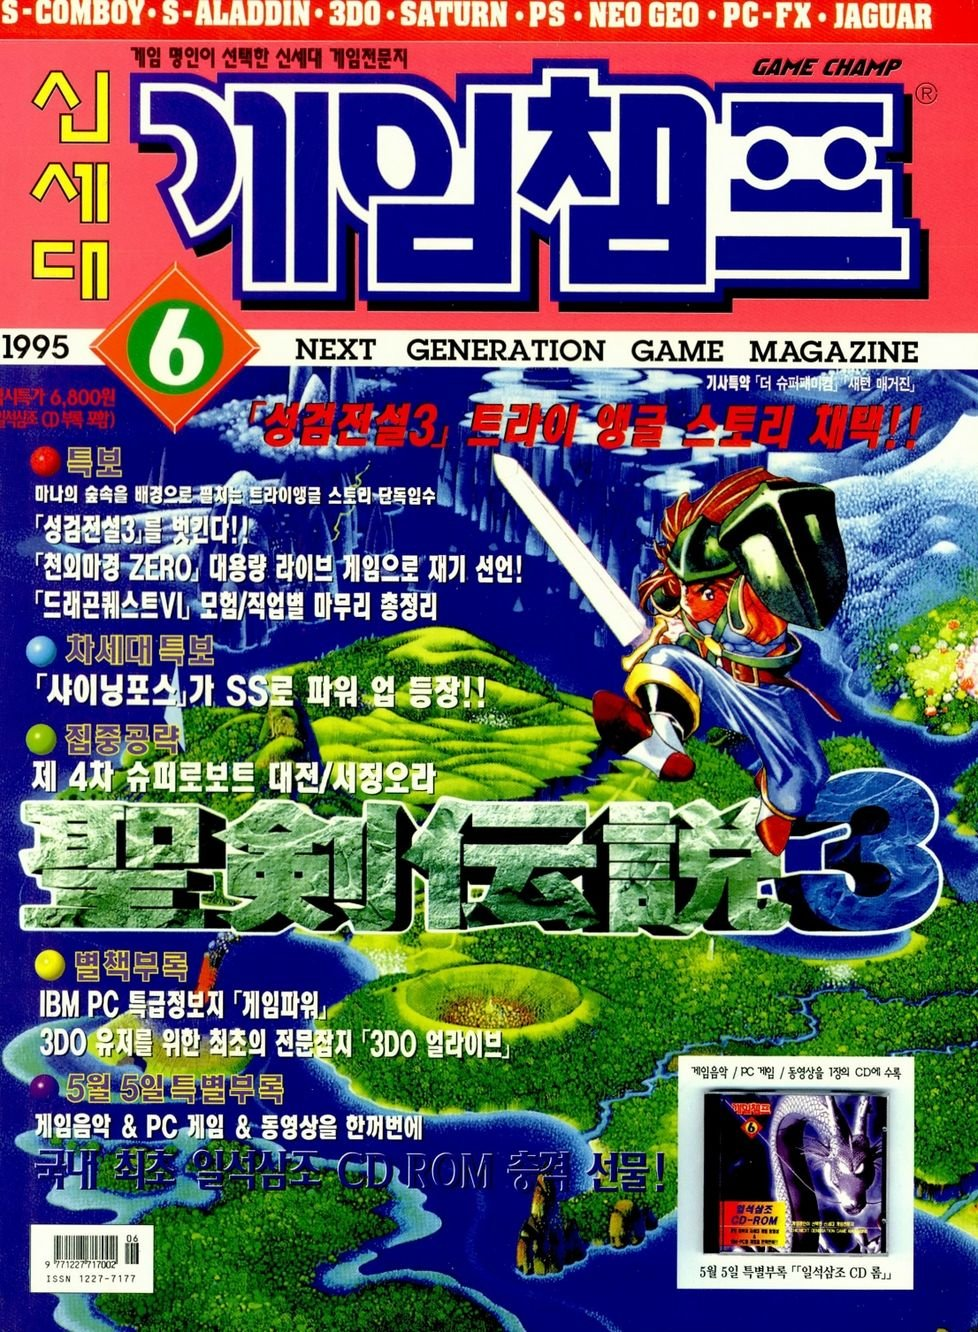 Game Champ Issue 031 (June 1995)